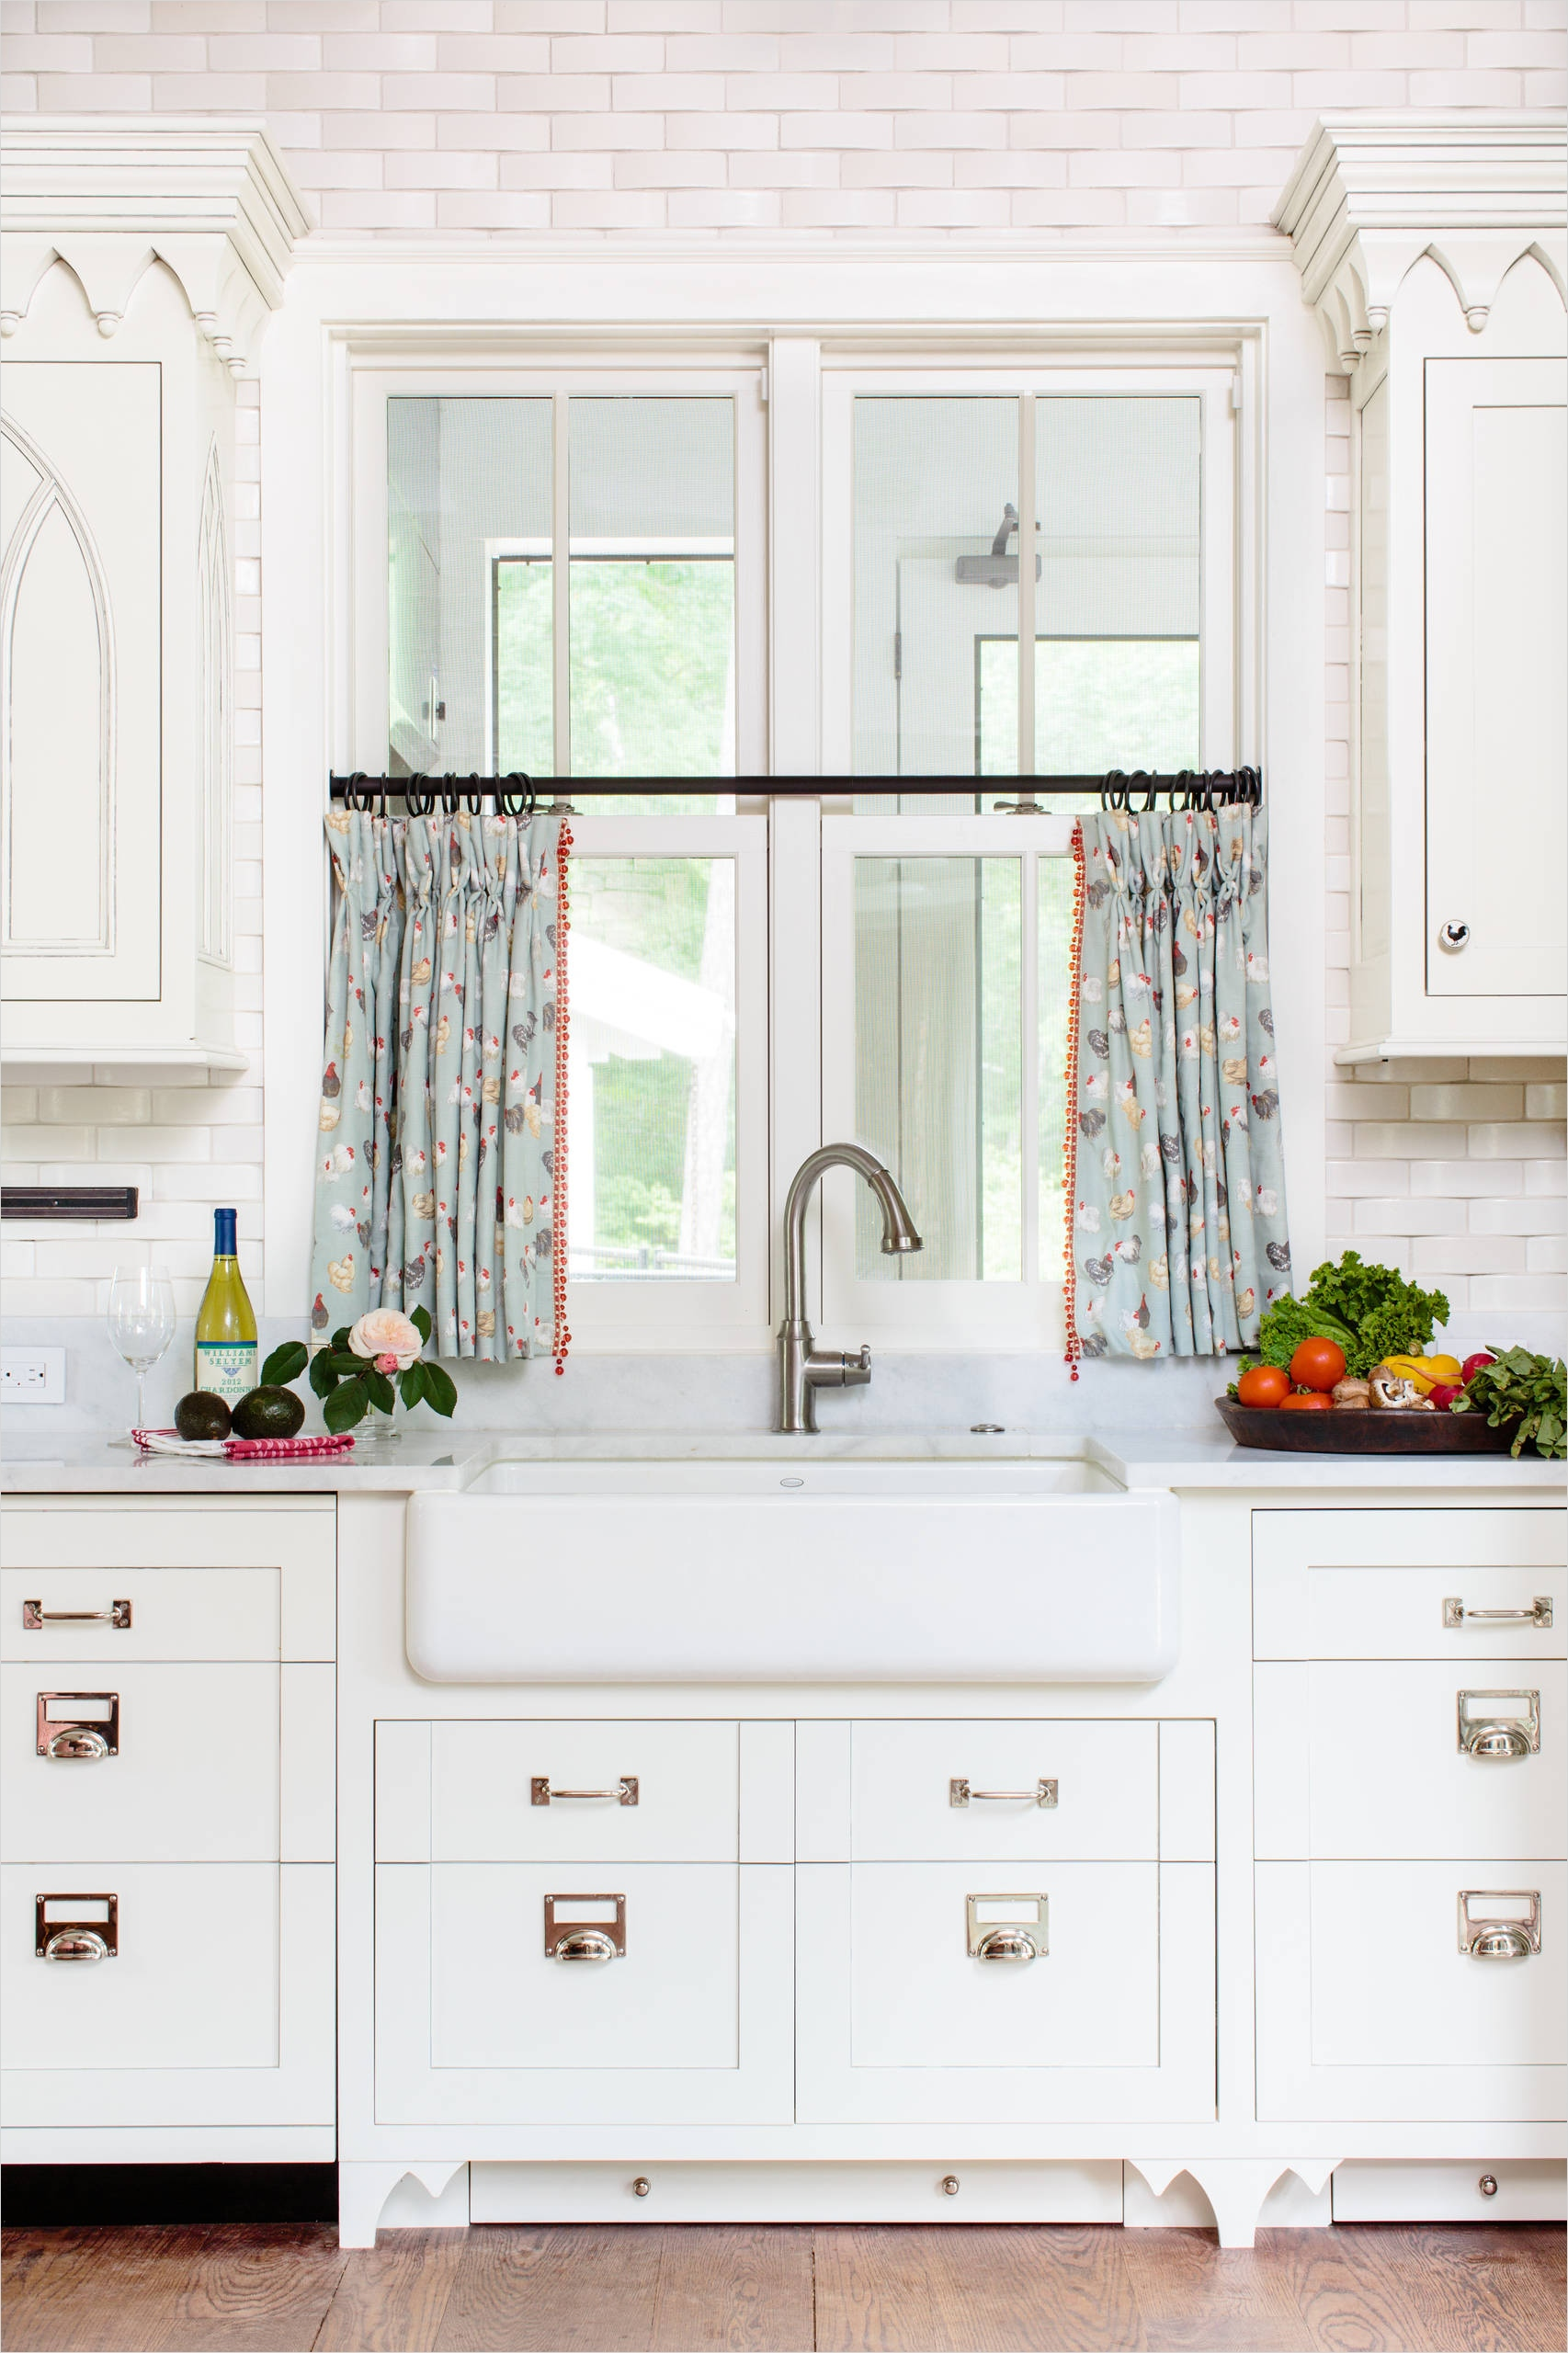 41 Perfect Farmhouse Country Kitchen Curtain Valances 77 10 Best Patterns for Kitchen Curtains 6